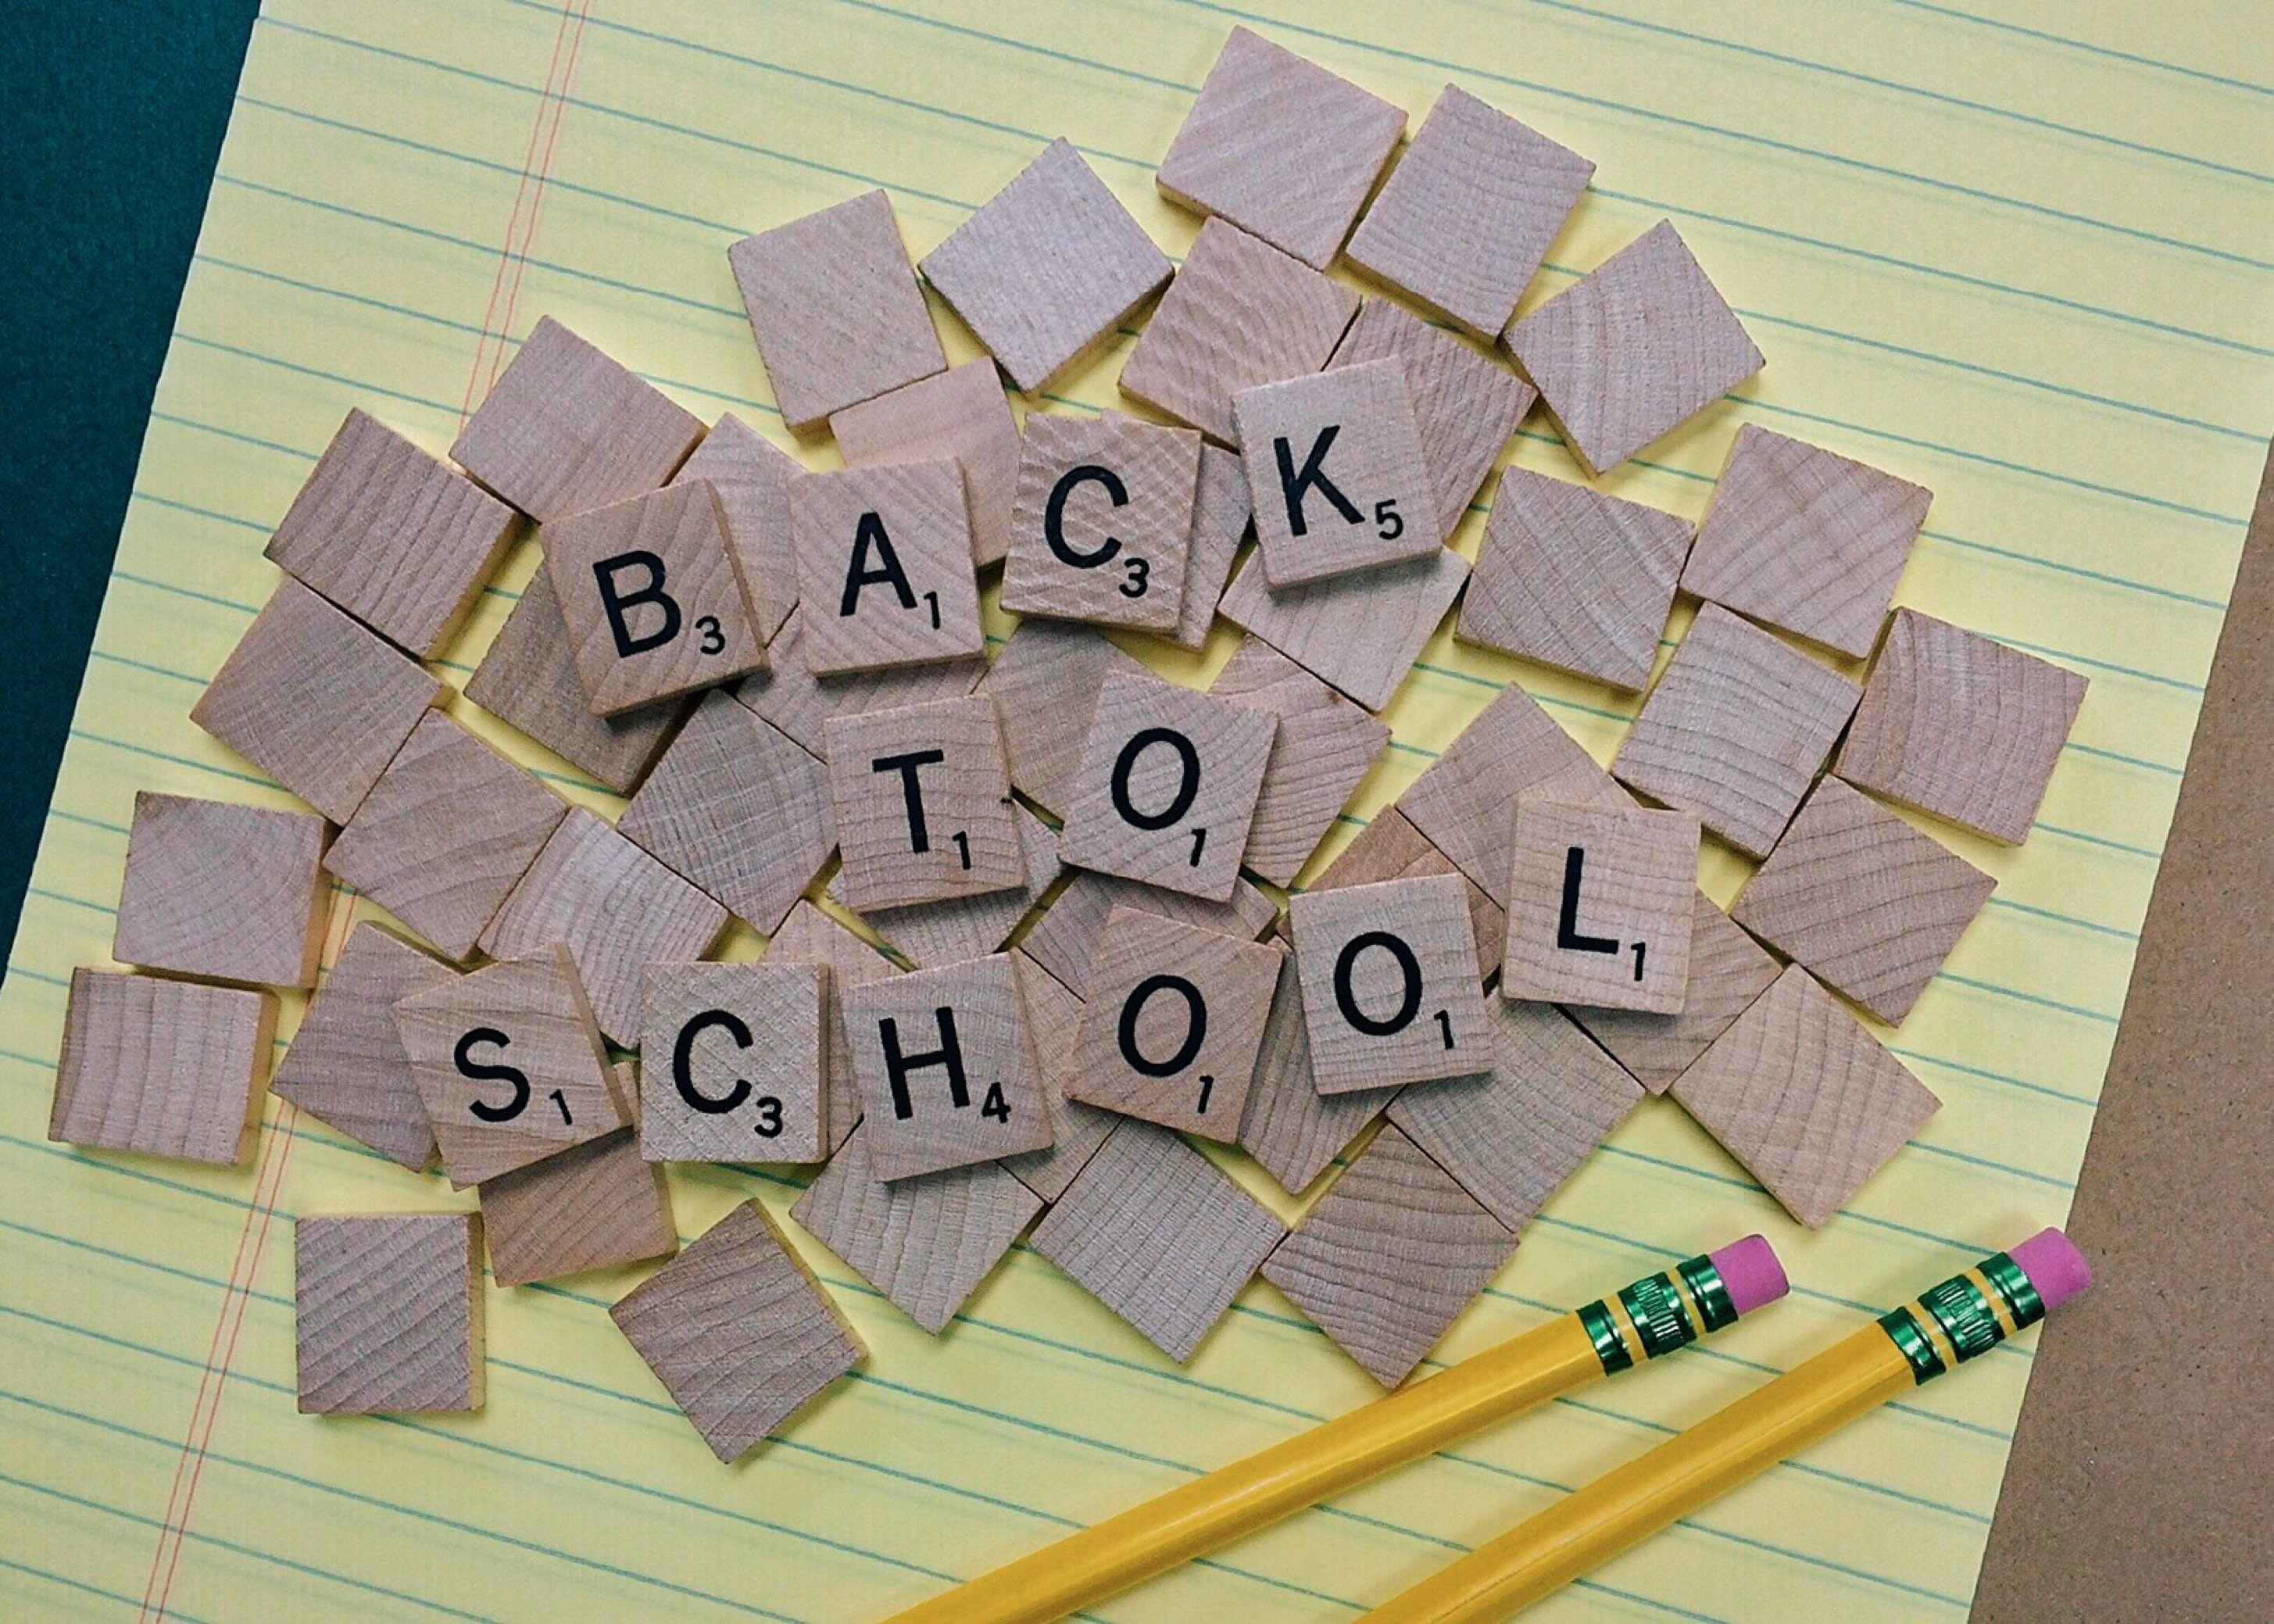 back-to-school-conceptual-creativity-207658